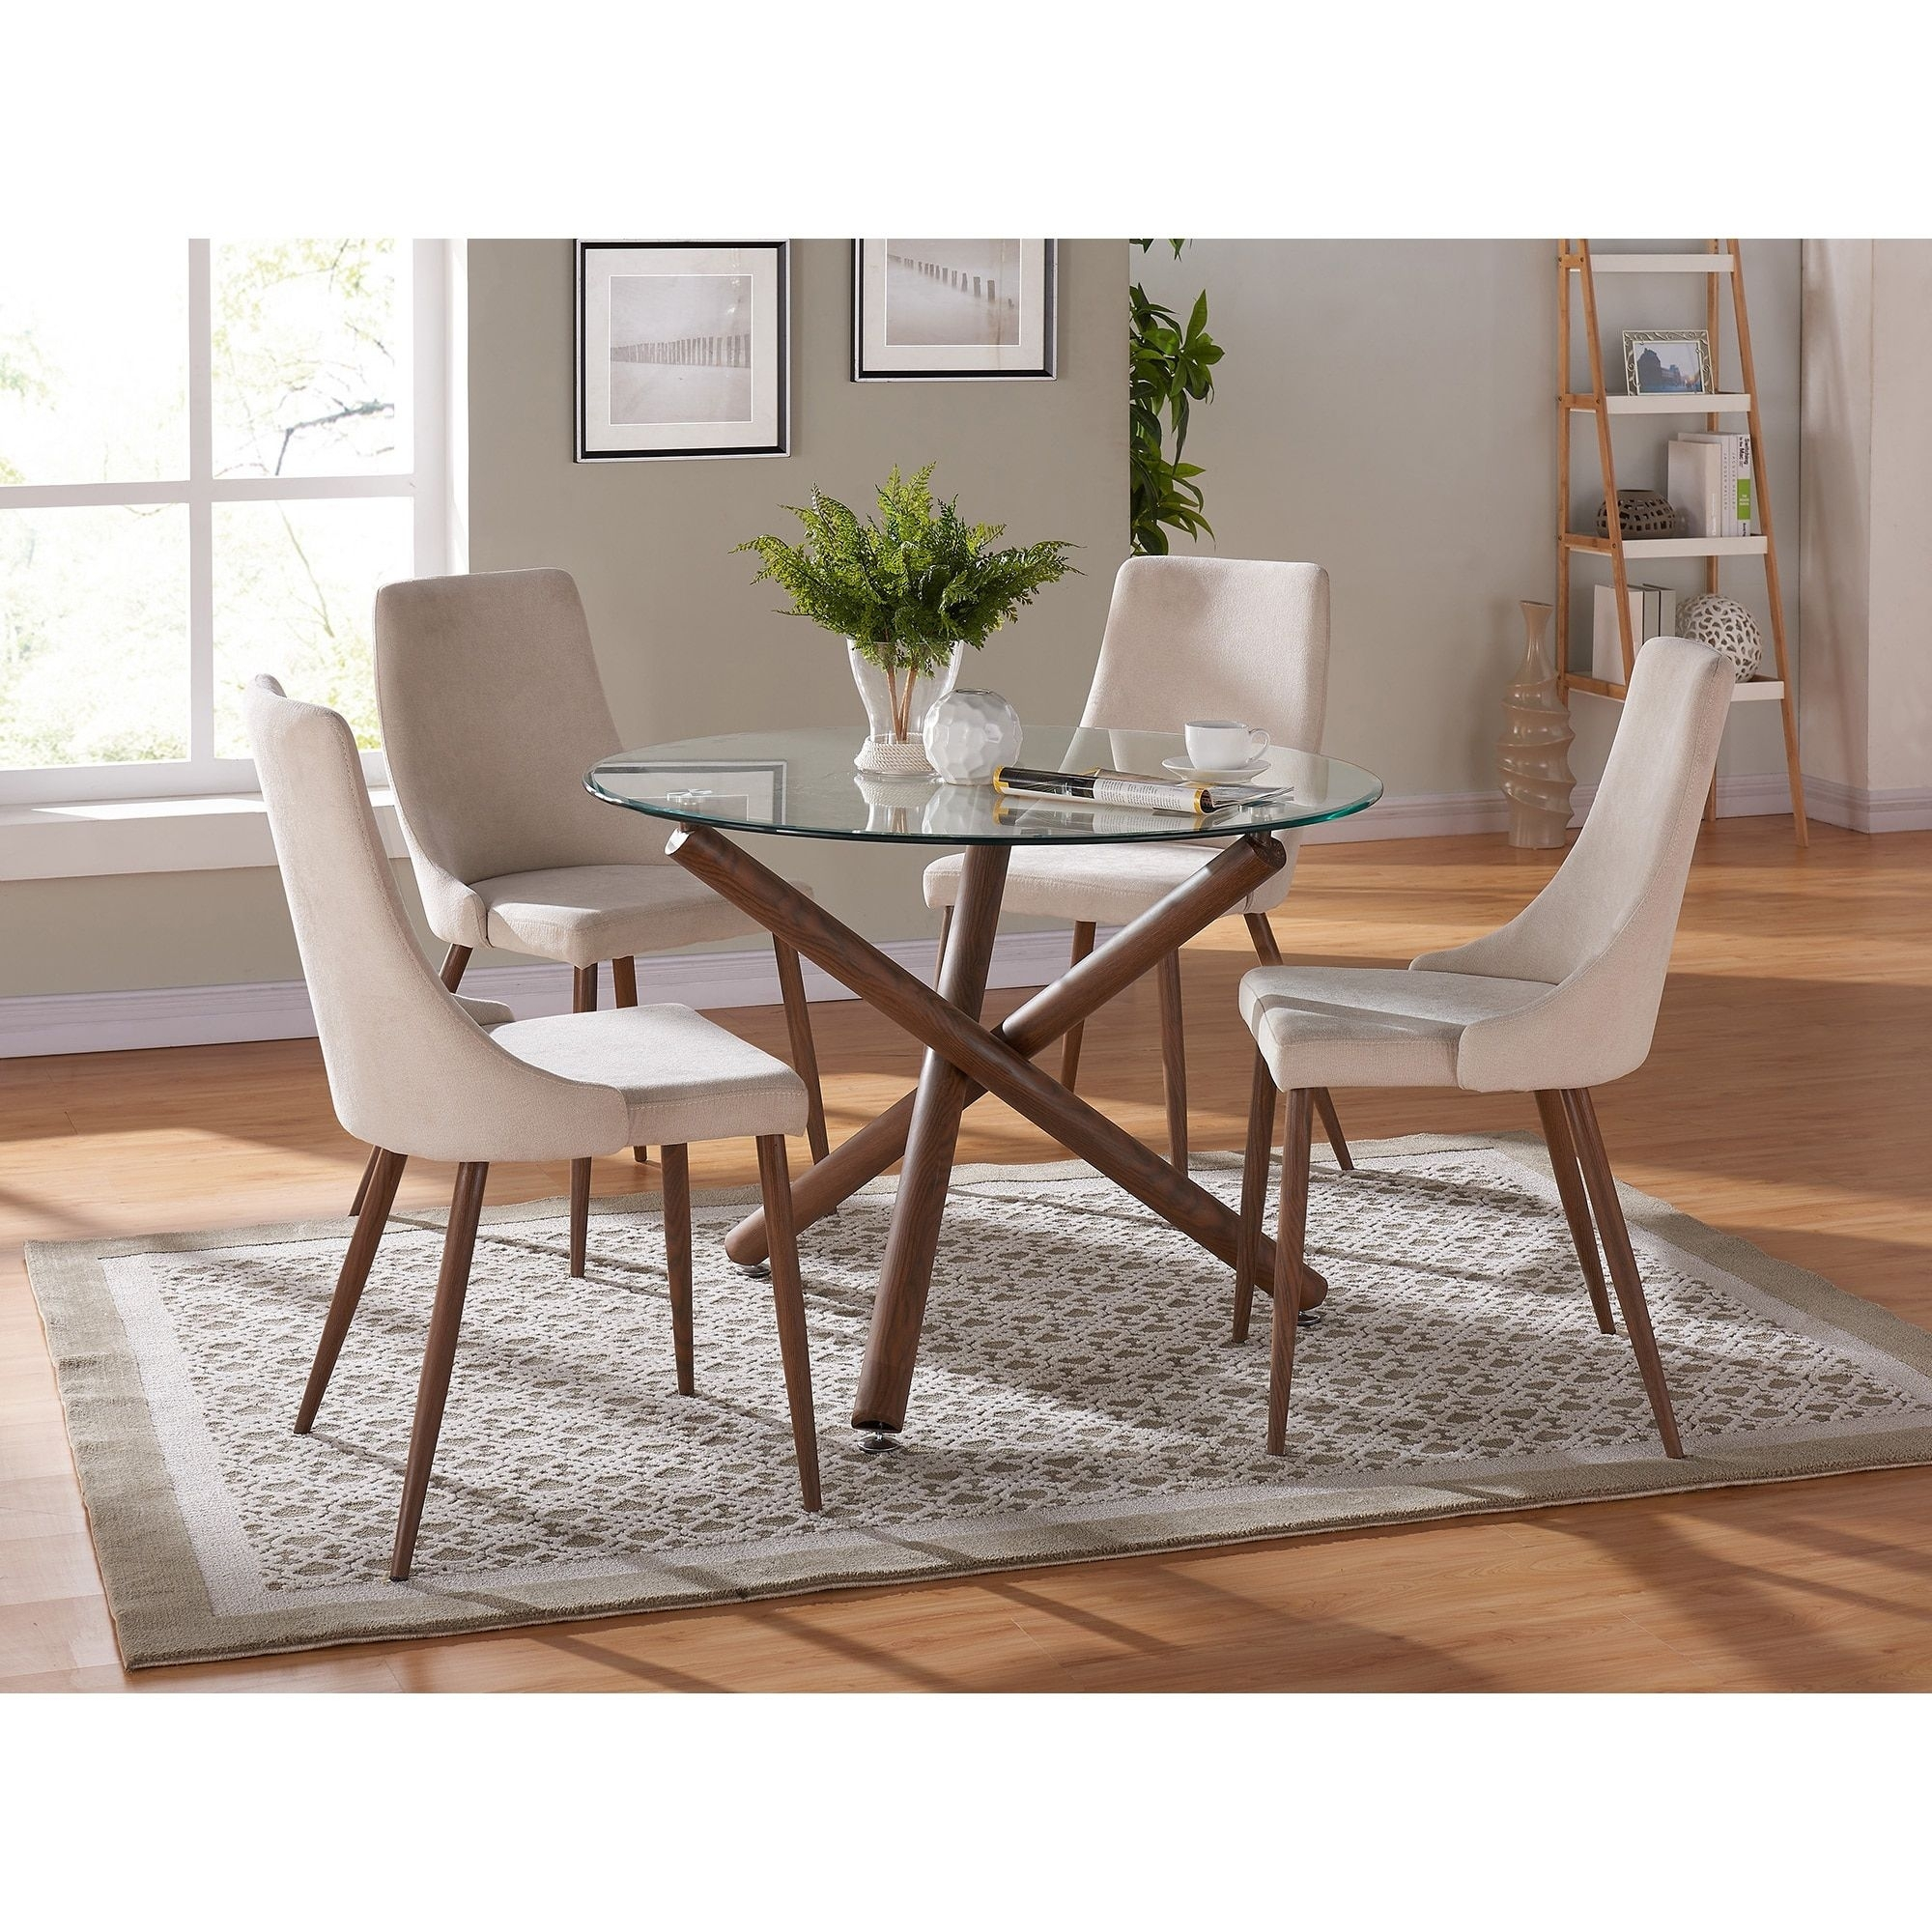 Cora Side Chairs Inside Current Worldwide Cora Side Chair Set Of 2 (Cora Side Chair St Of 2 – Beige (View 8 of 20)